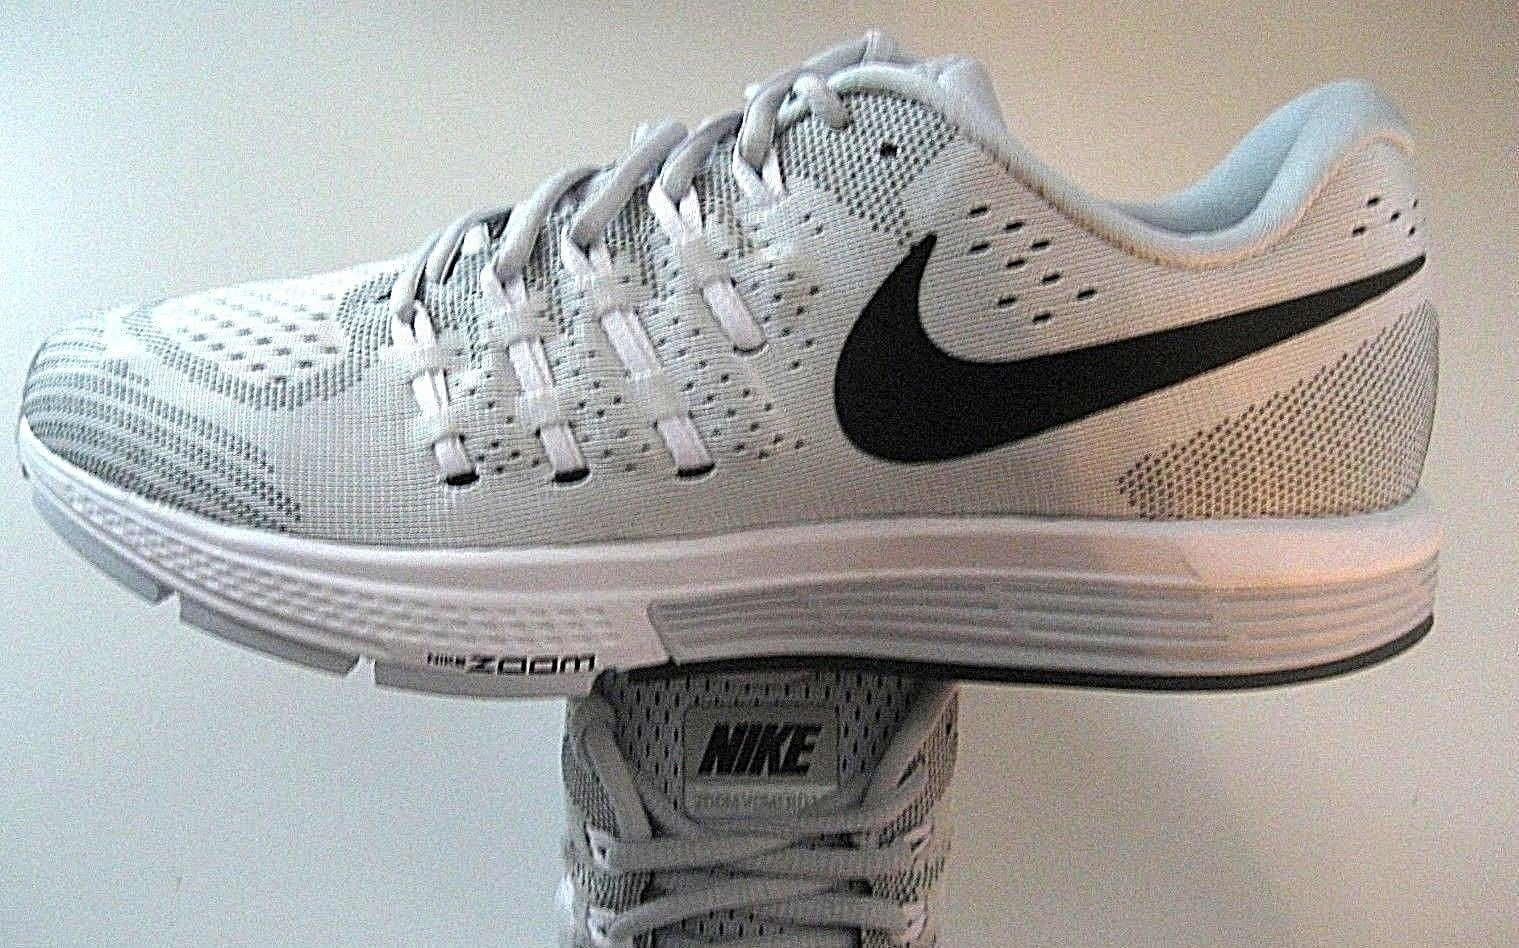 69556f384381 Nike Mens Air Zoom Vomero 11 Running Shoes and 14 similar items. 57